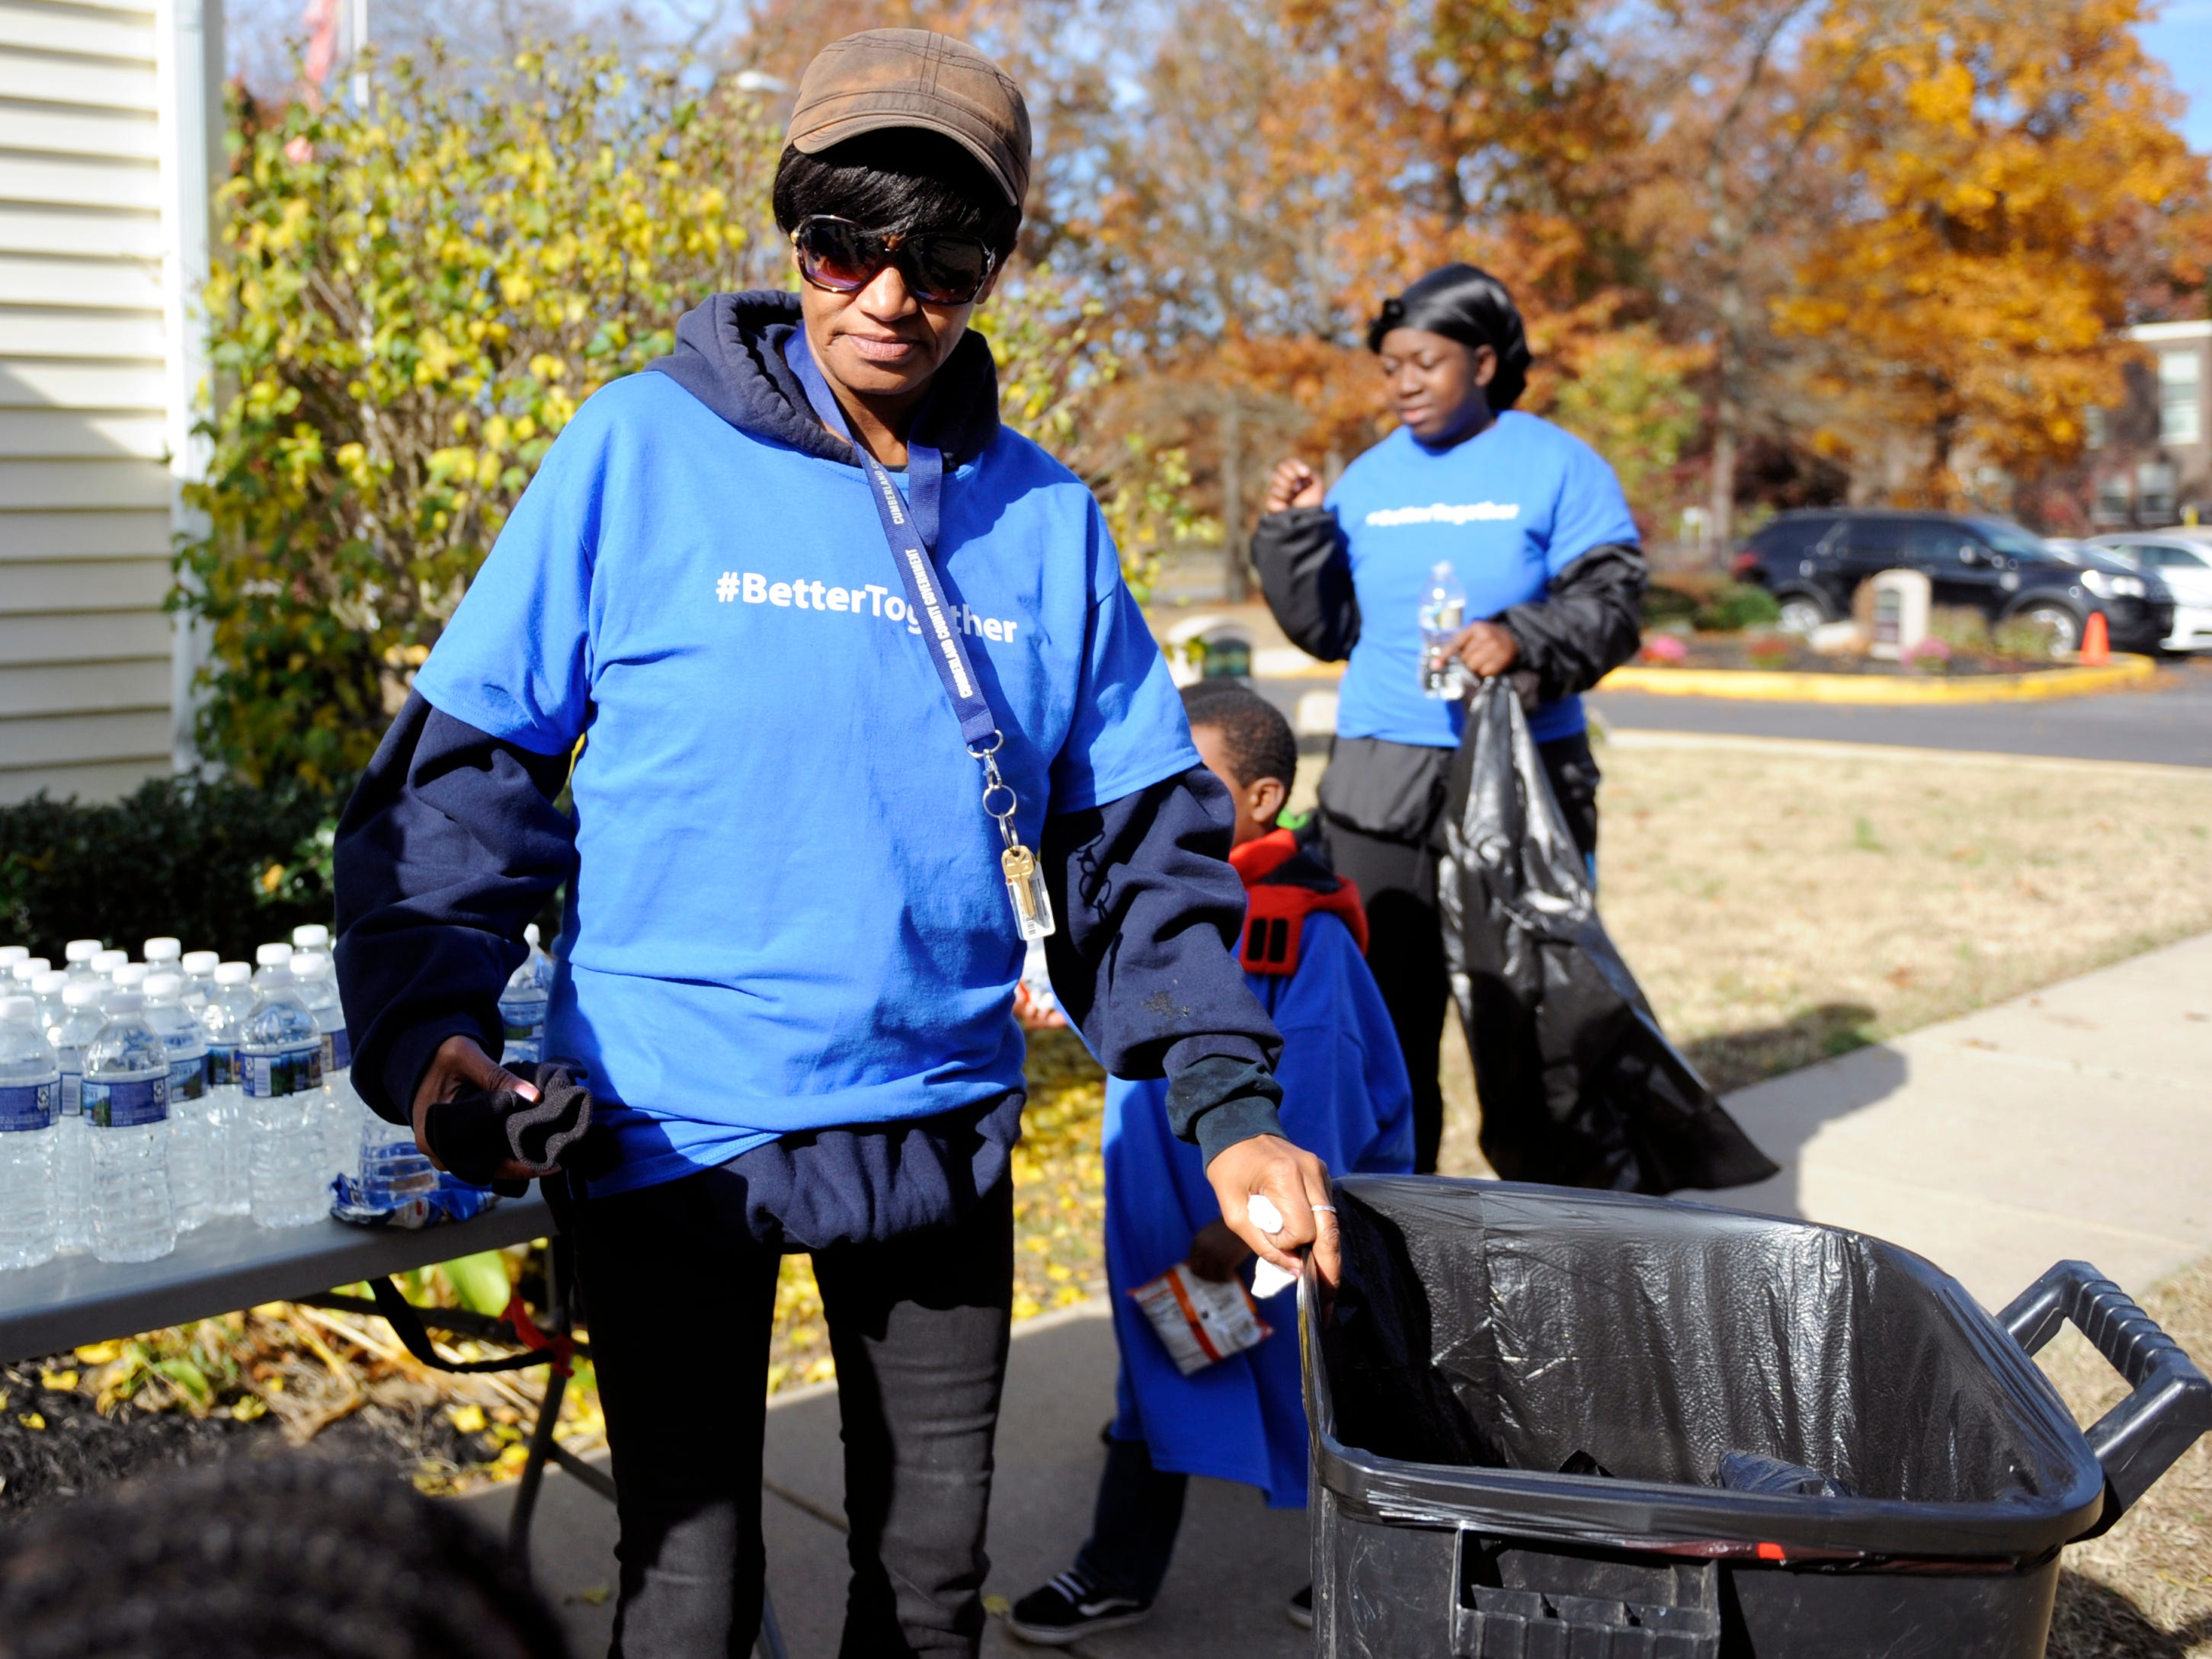 Oakview Apartments resident Angela Pernell helps out during a community clean up event in Millville.